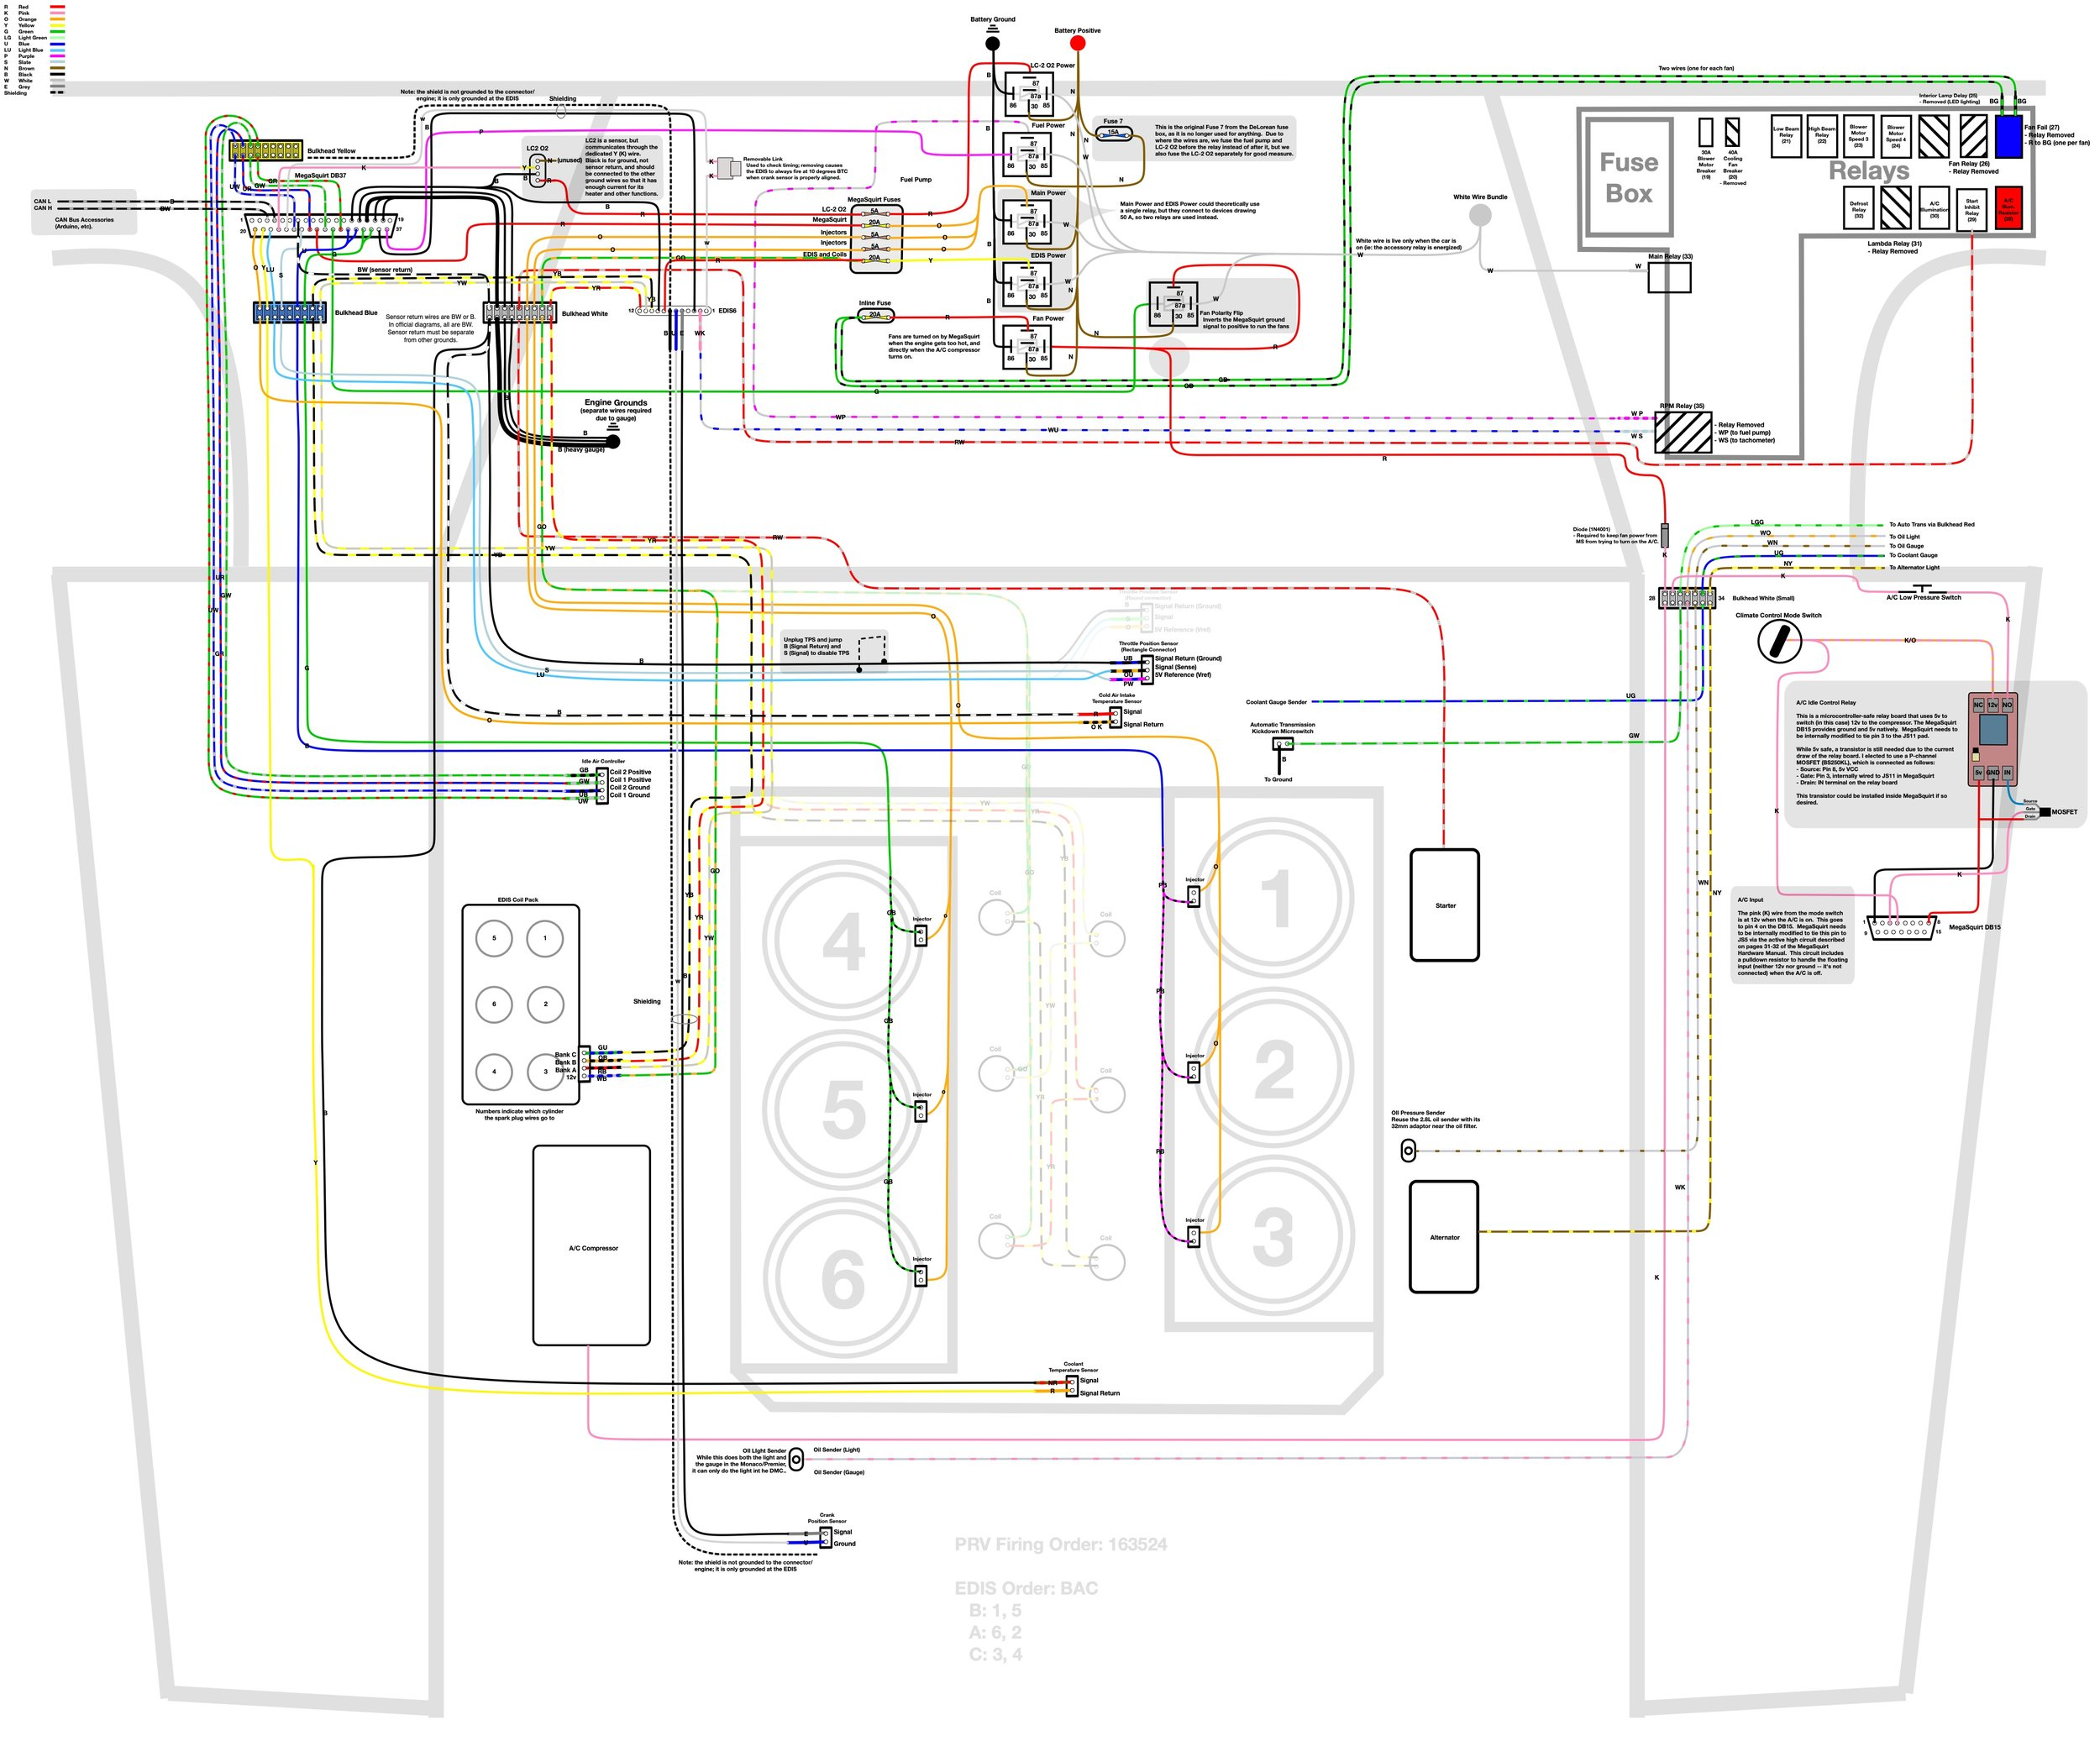 edis 4 wiring diagram step down transformer installing the new harness and fuel injector refurbishing joe s projects